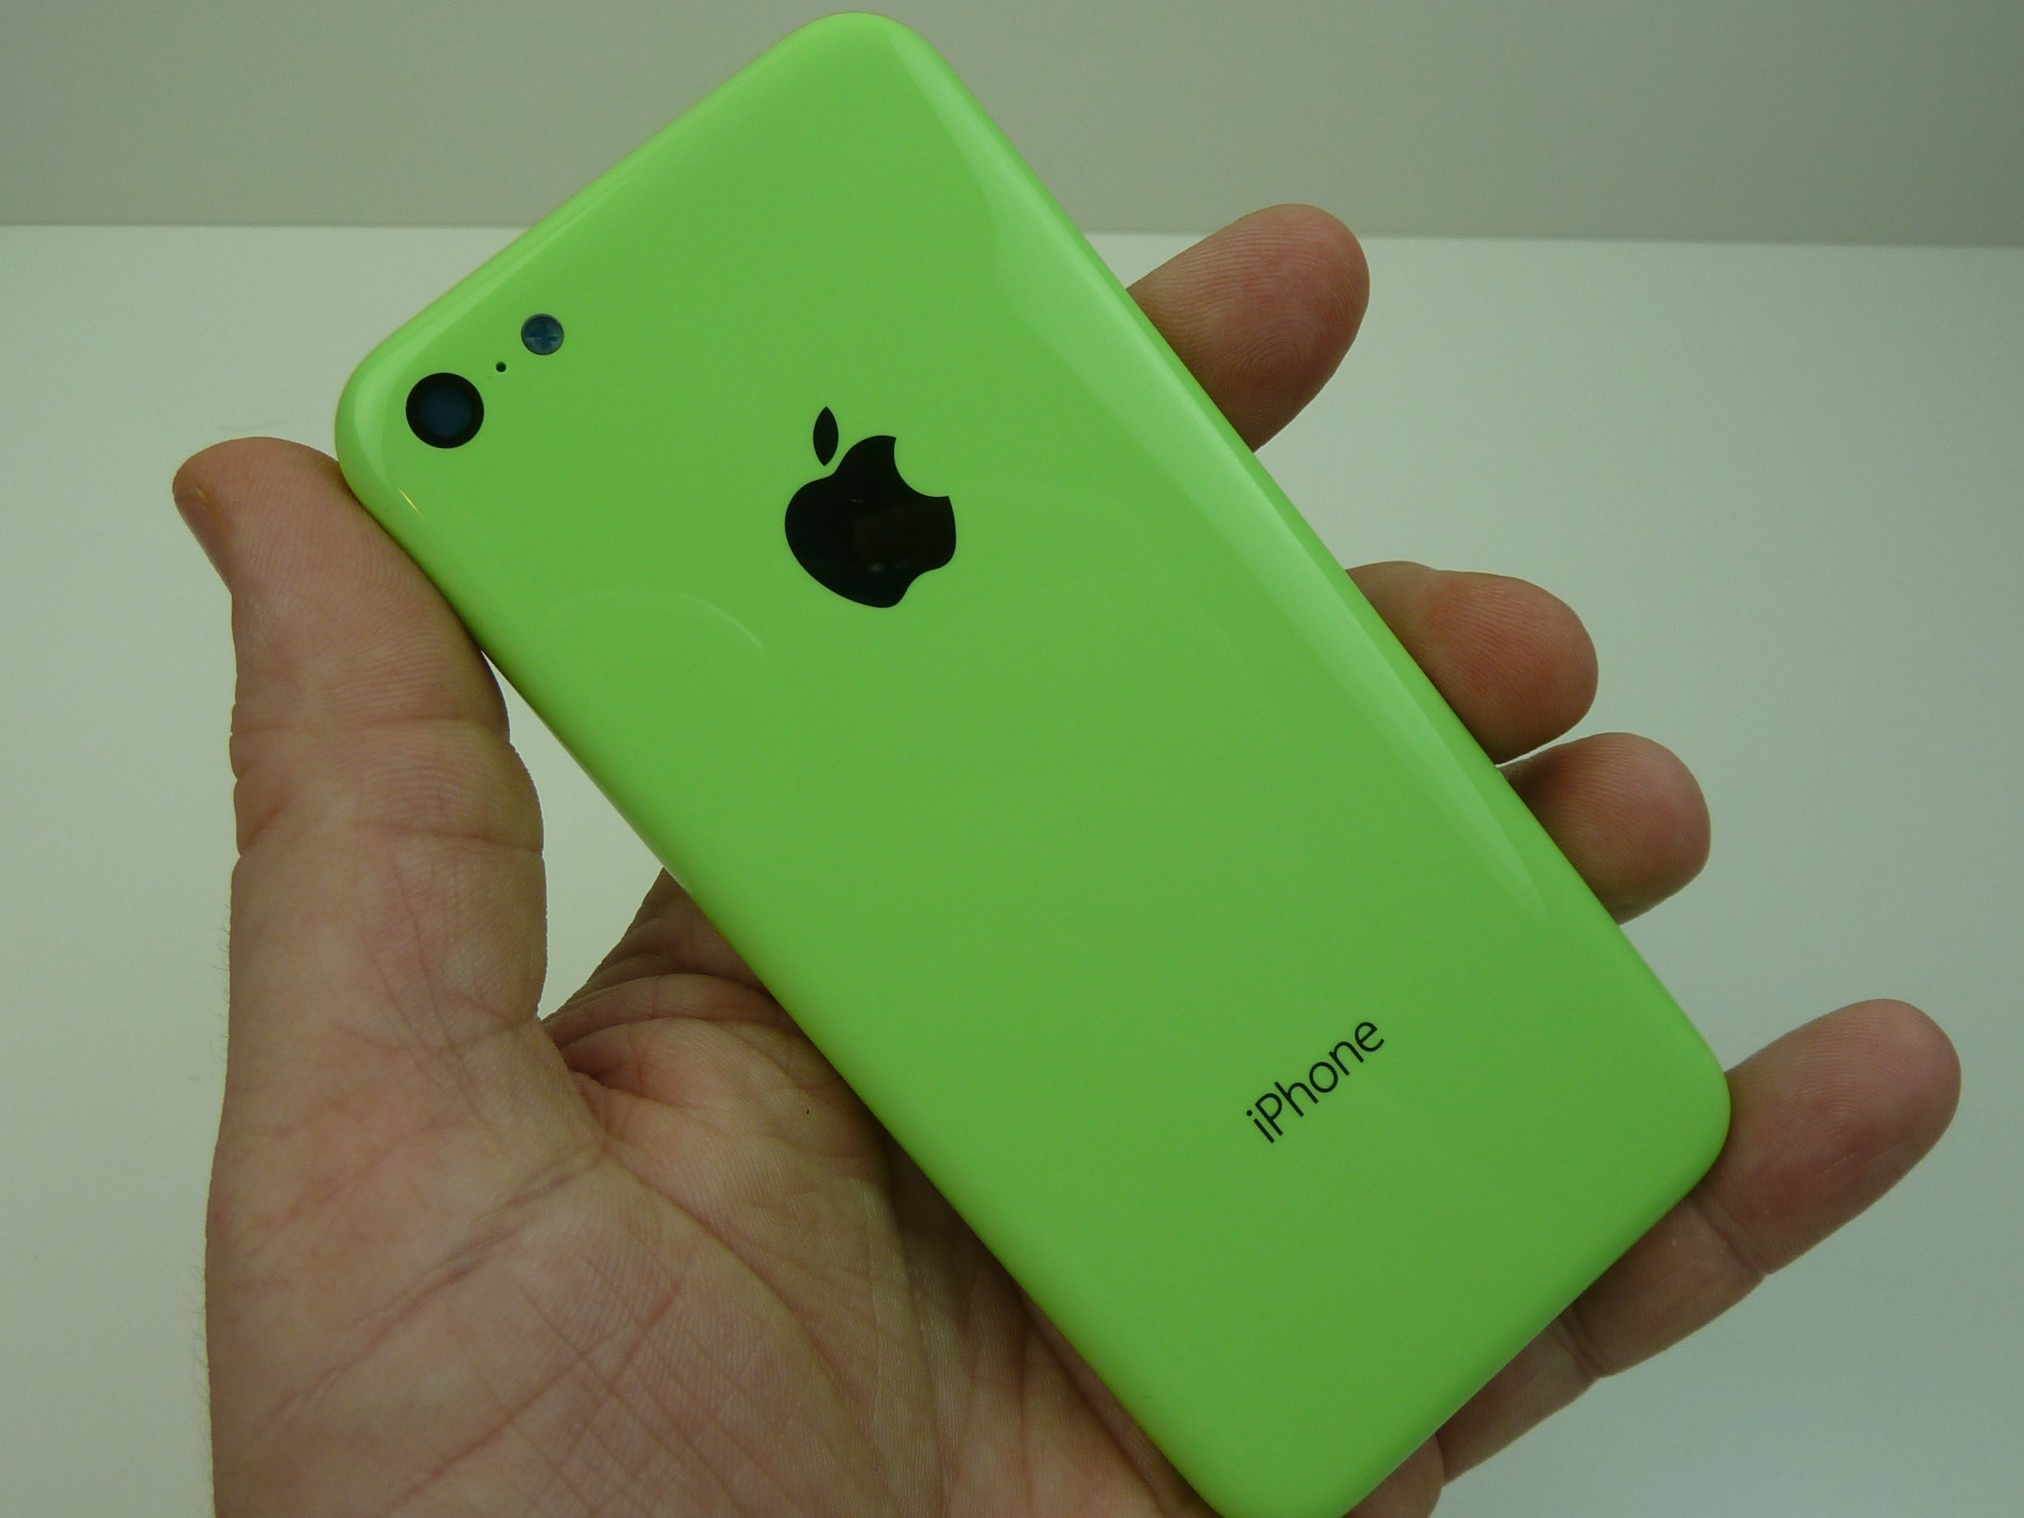 image1 UBS predicts iPhone 5C will be a hit in China